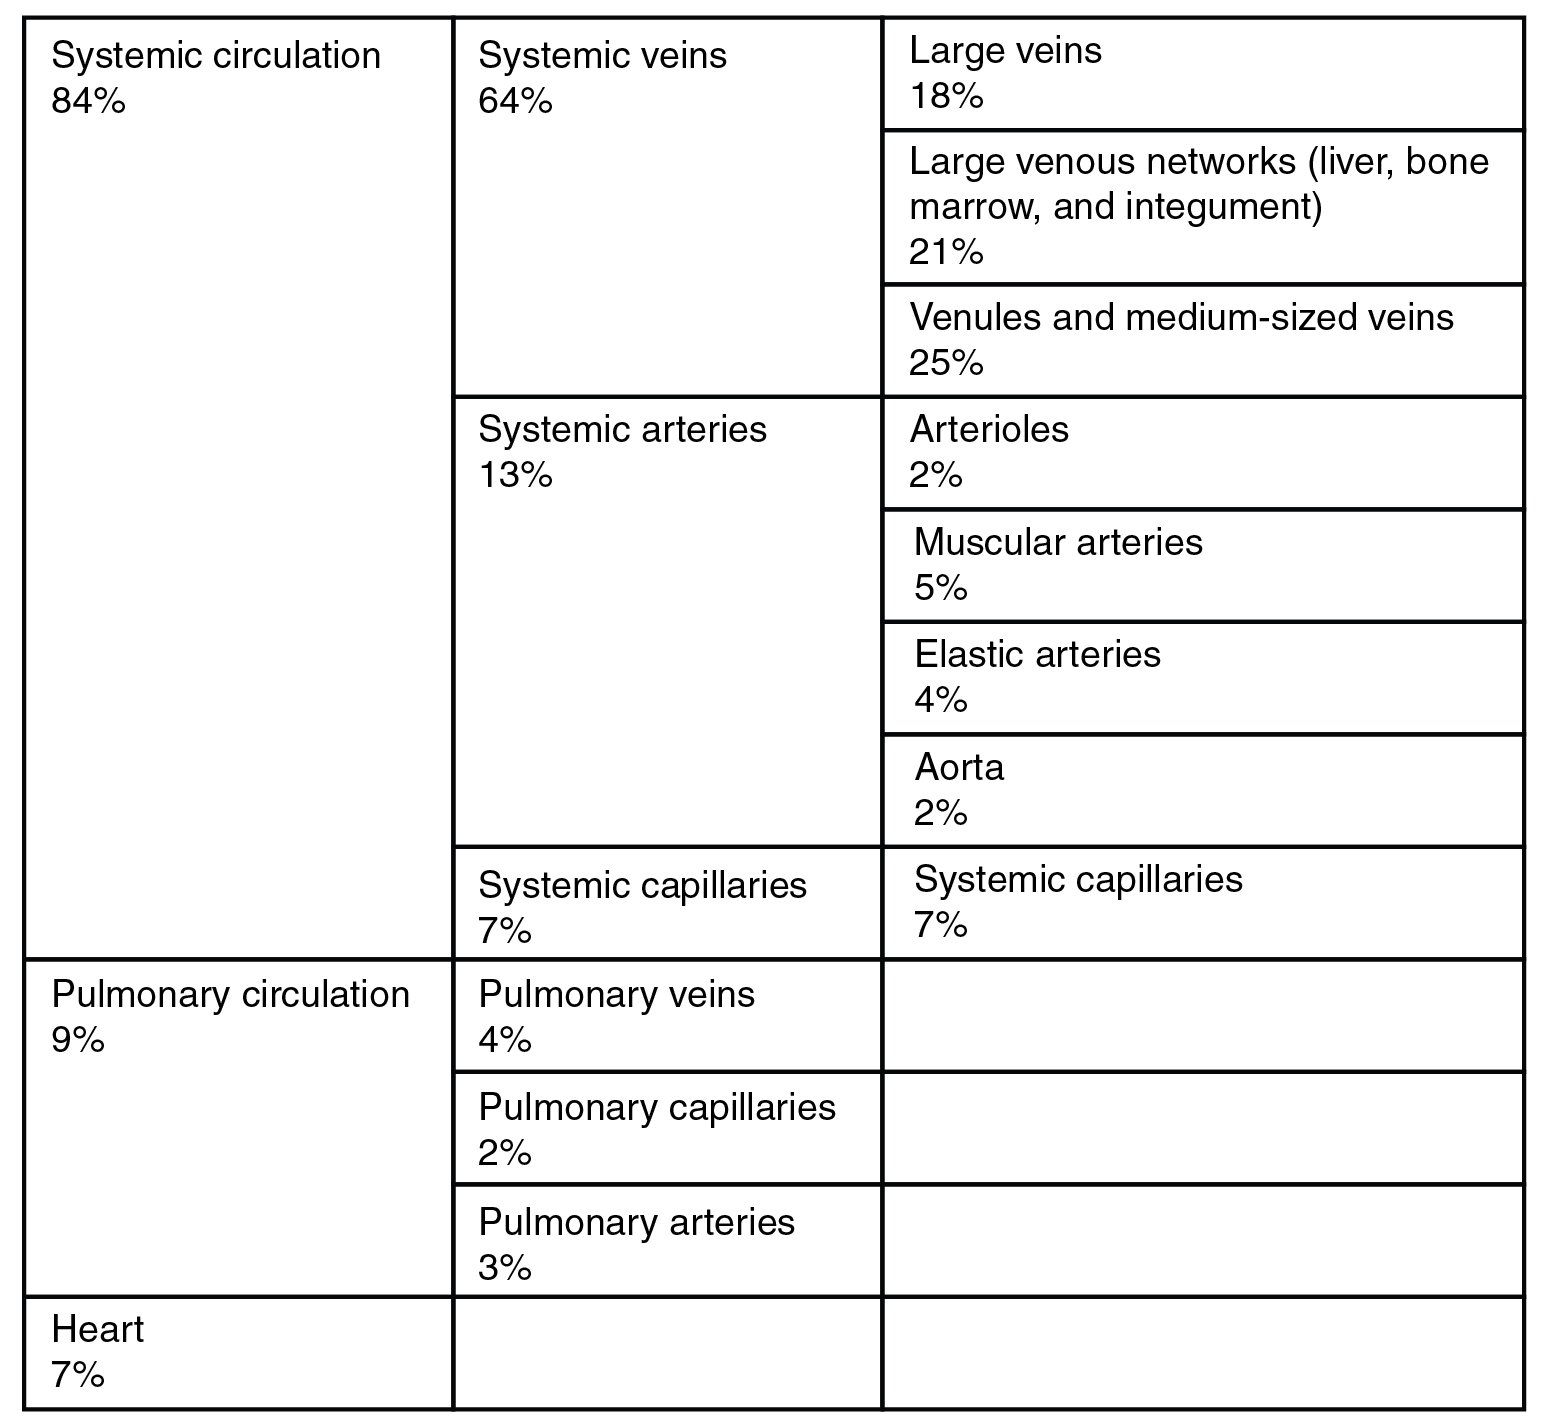 This table describes the distribution of blood flow. 84 percent of blood flow is systemic circulation, of which 64 percent happens in systemic veins (18 percent in large veins, 21 percent in large venous networks such as liver, bone marrow, and integument, and 25 percent in venules and medium-sized veins); 13 percent happens in systemic arteries (2 percent in arterioles, 5 percent in muscular arteries, 4 percent in elastic arteries, and 2 percent in the aorta); and 7 percent happens in systemic capillaries. 9 percent of blood flow is pulmonary circulation, of which 4 percent happens in pulmonary veins, 2 percent happens in pulmonary capillaries, and 3 percent happens in pulmonary arteries. The remaining 7 percent of blood flow is in the heart.